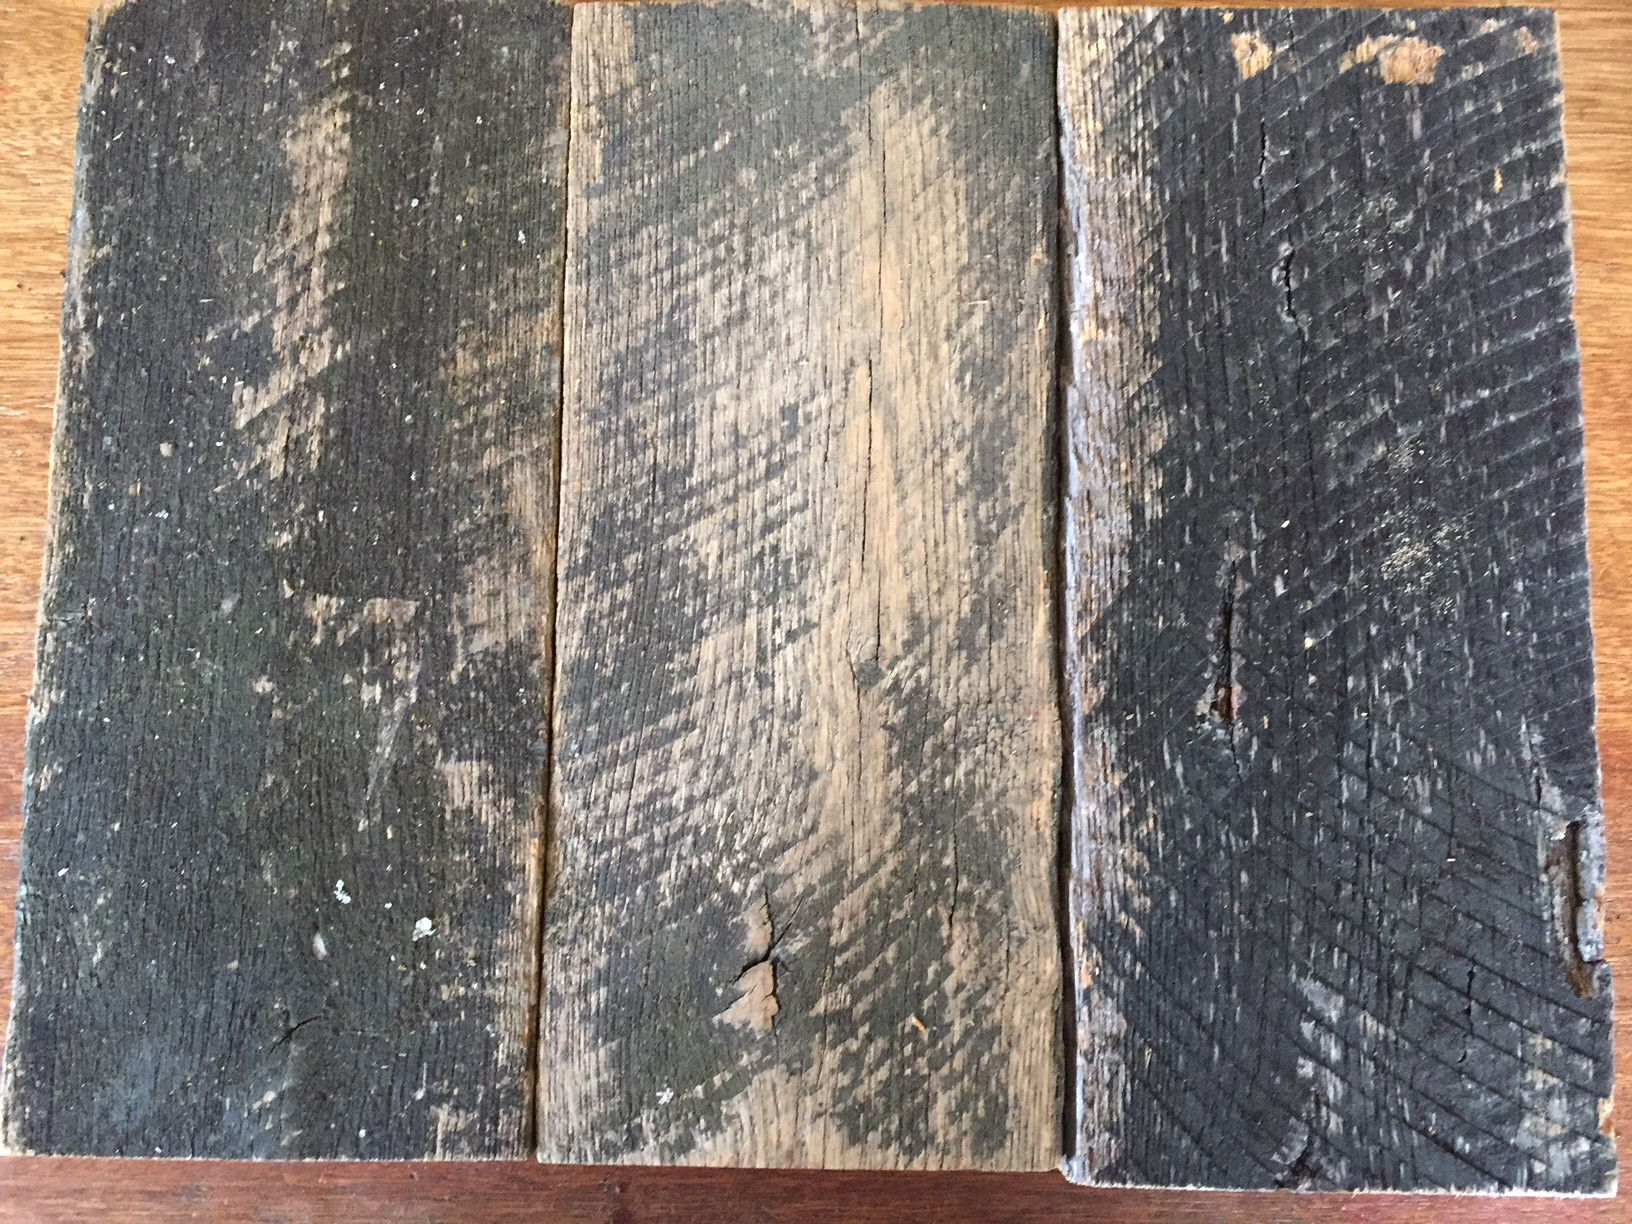 13 Awesome Hardwood Floor Refinishing northern Ky 2021 free download hardwood floor refinishing northern ky of heritage salvage heritage salvage for from stone street farm owned by the kendall jackson wine co gorgeous 4 4 oak 12 5 a stick rough sawn with a pe